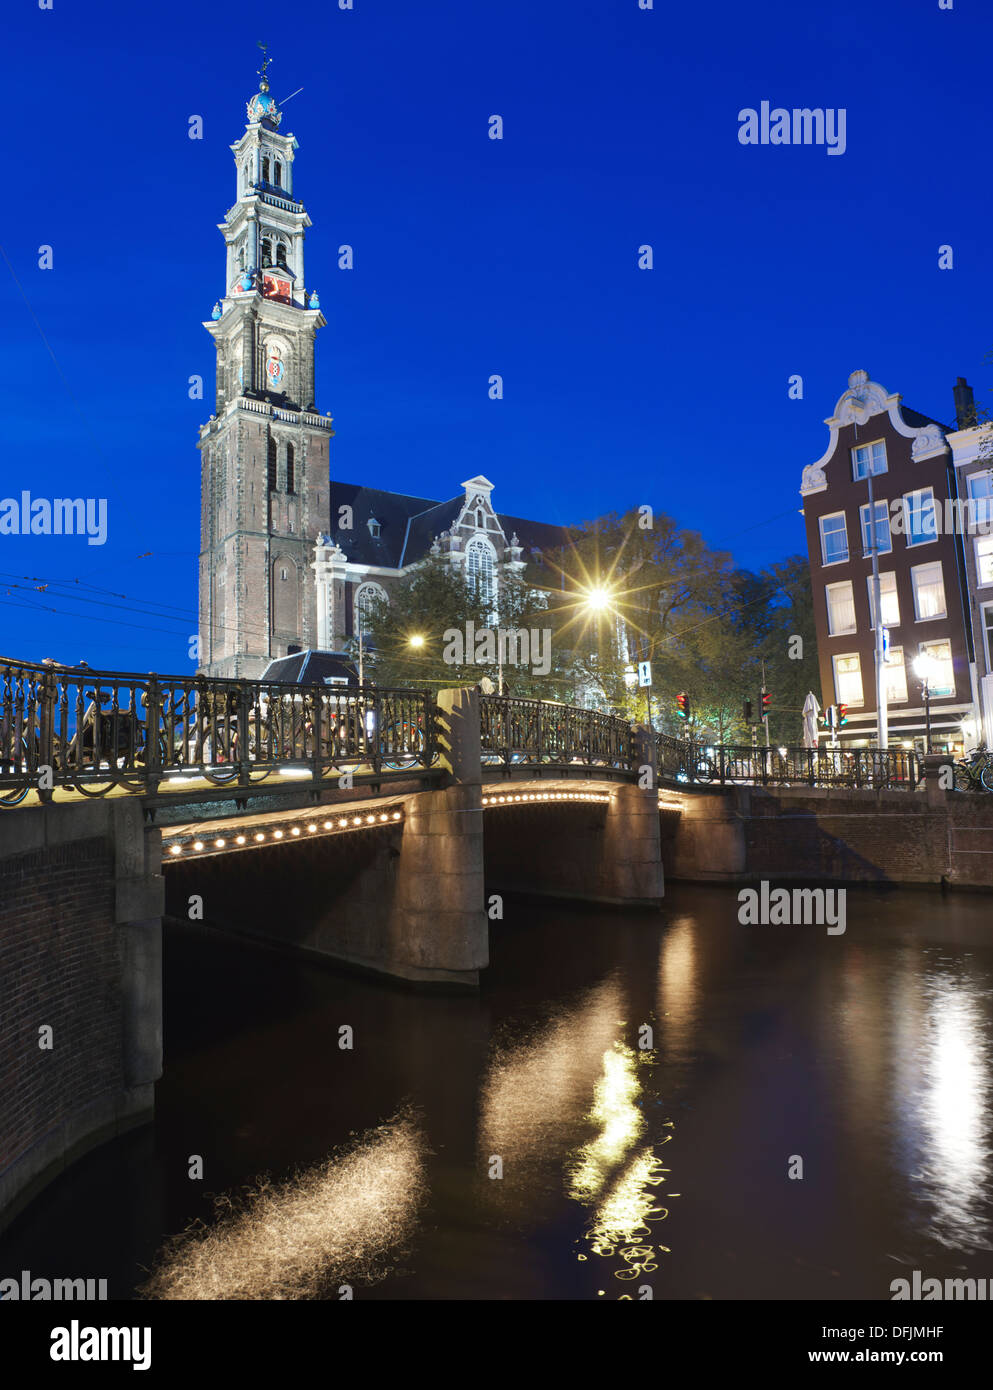 Westerkerk at night - Stock Image